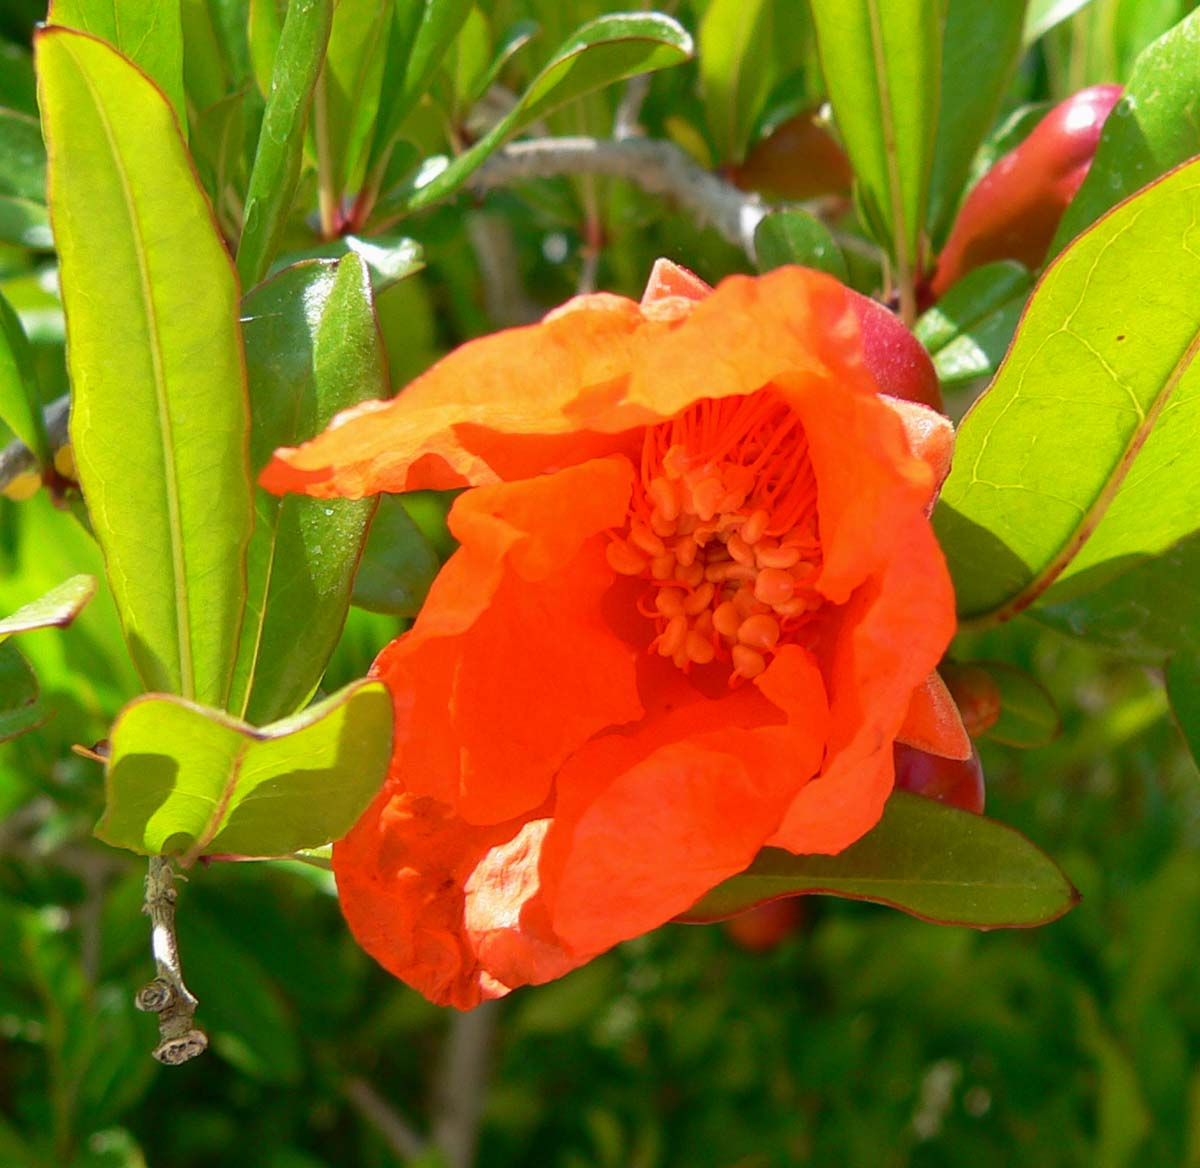 File:Punica granatum Nana flower interior.jpg - Wikimedia Commons